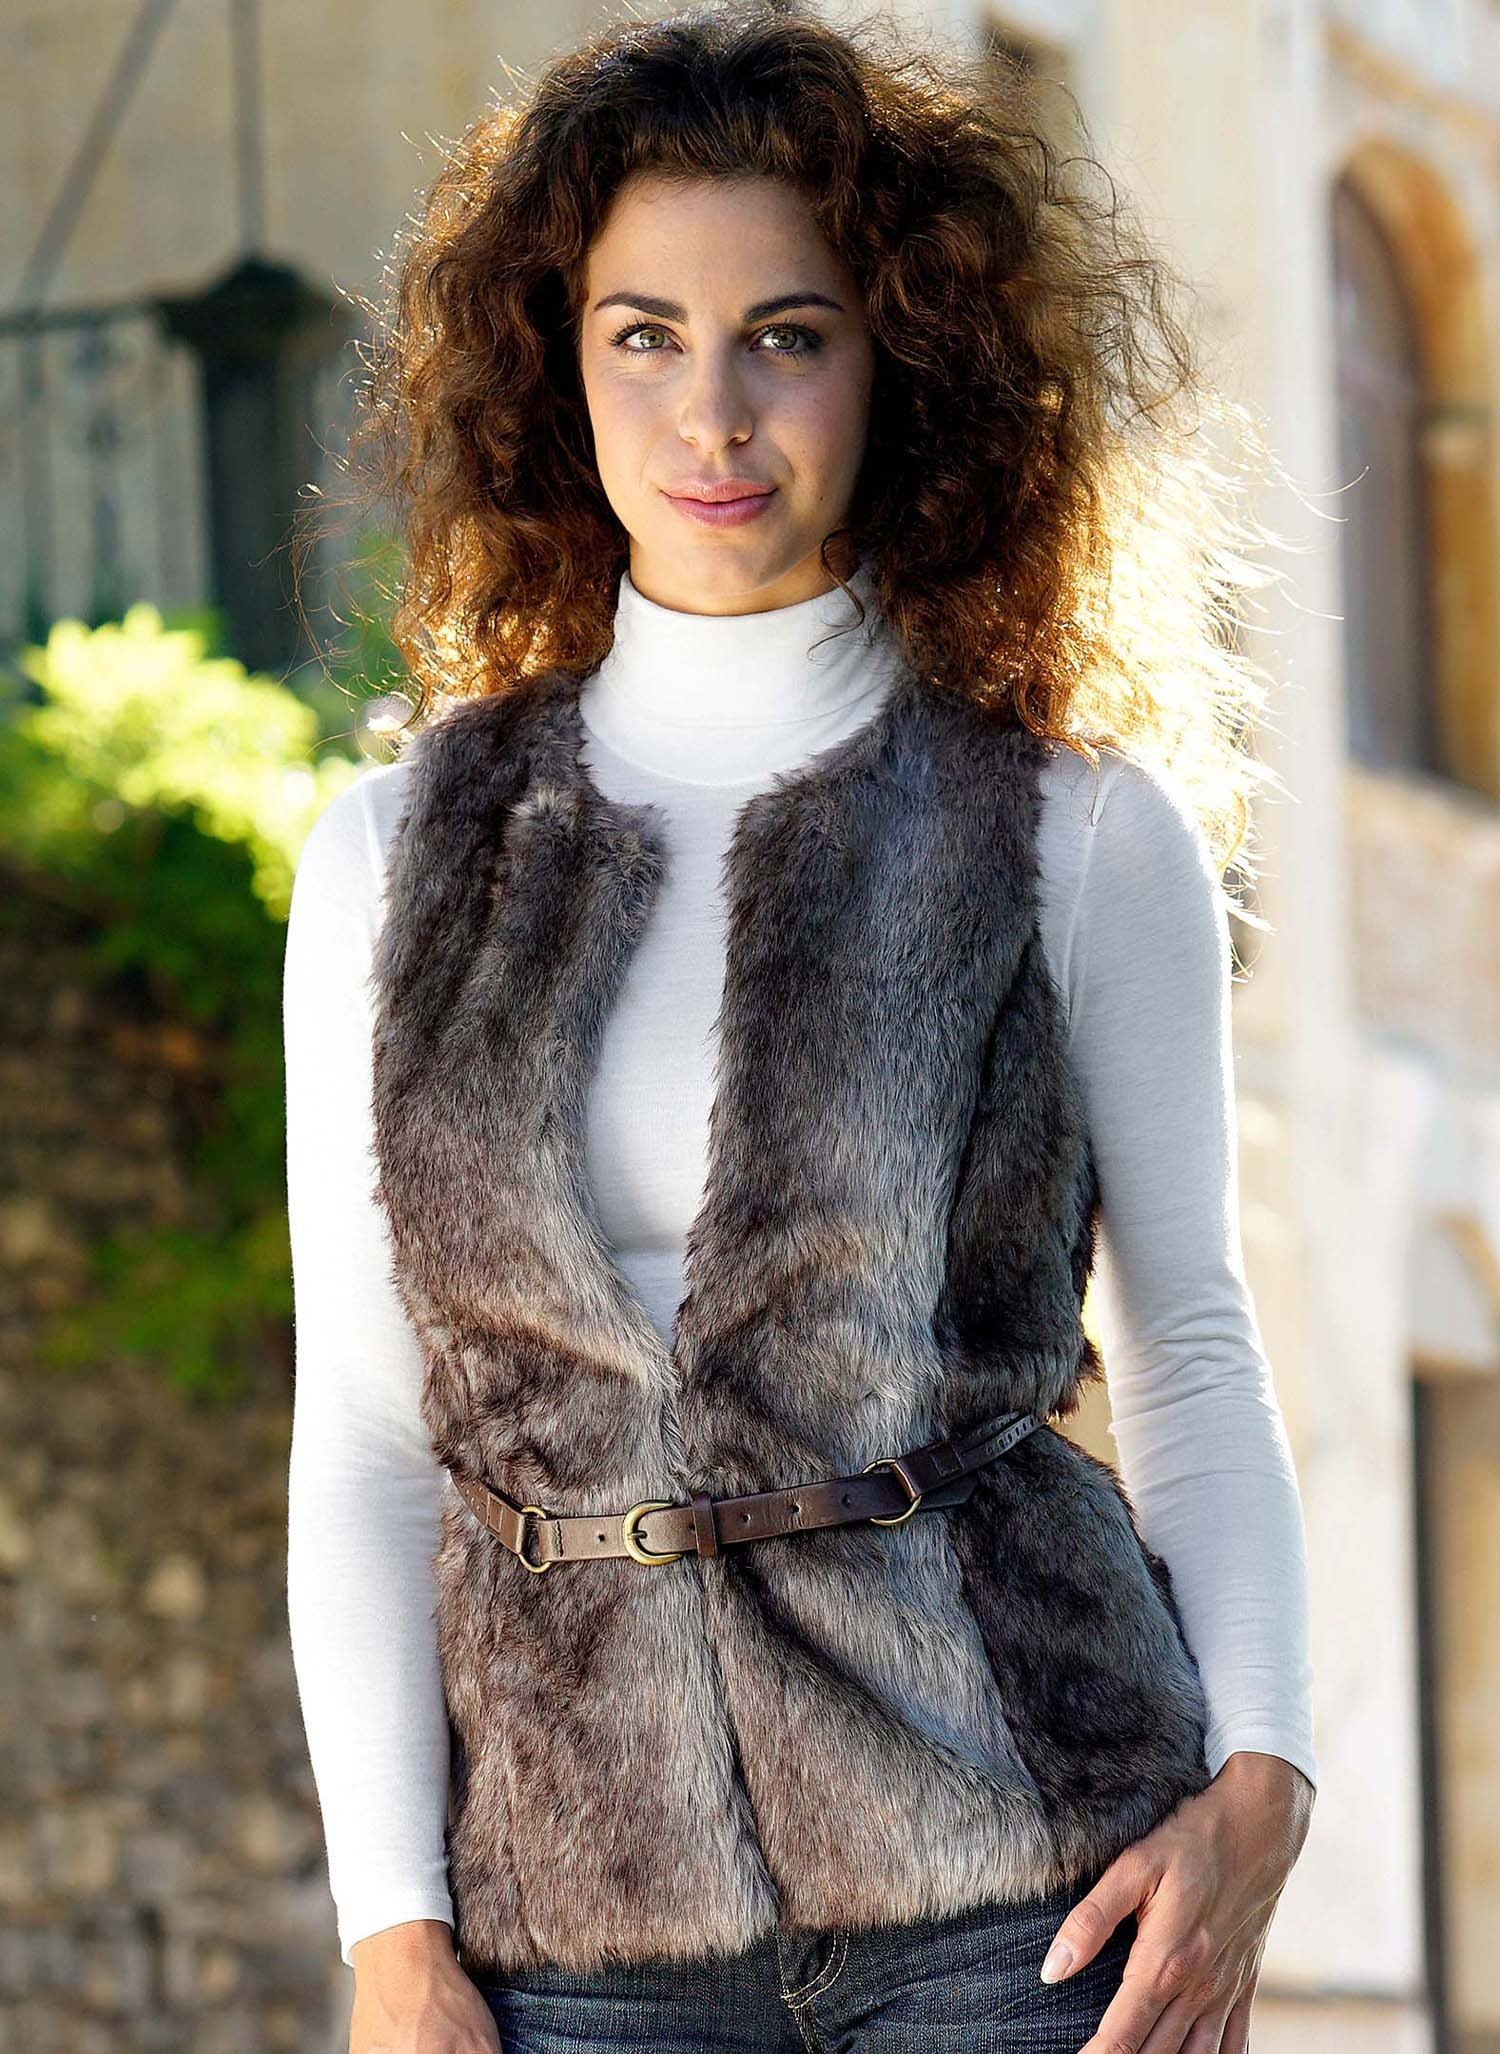 D-Long-Gilet,Imitat-Fell XL - 1 - Ronja.ch